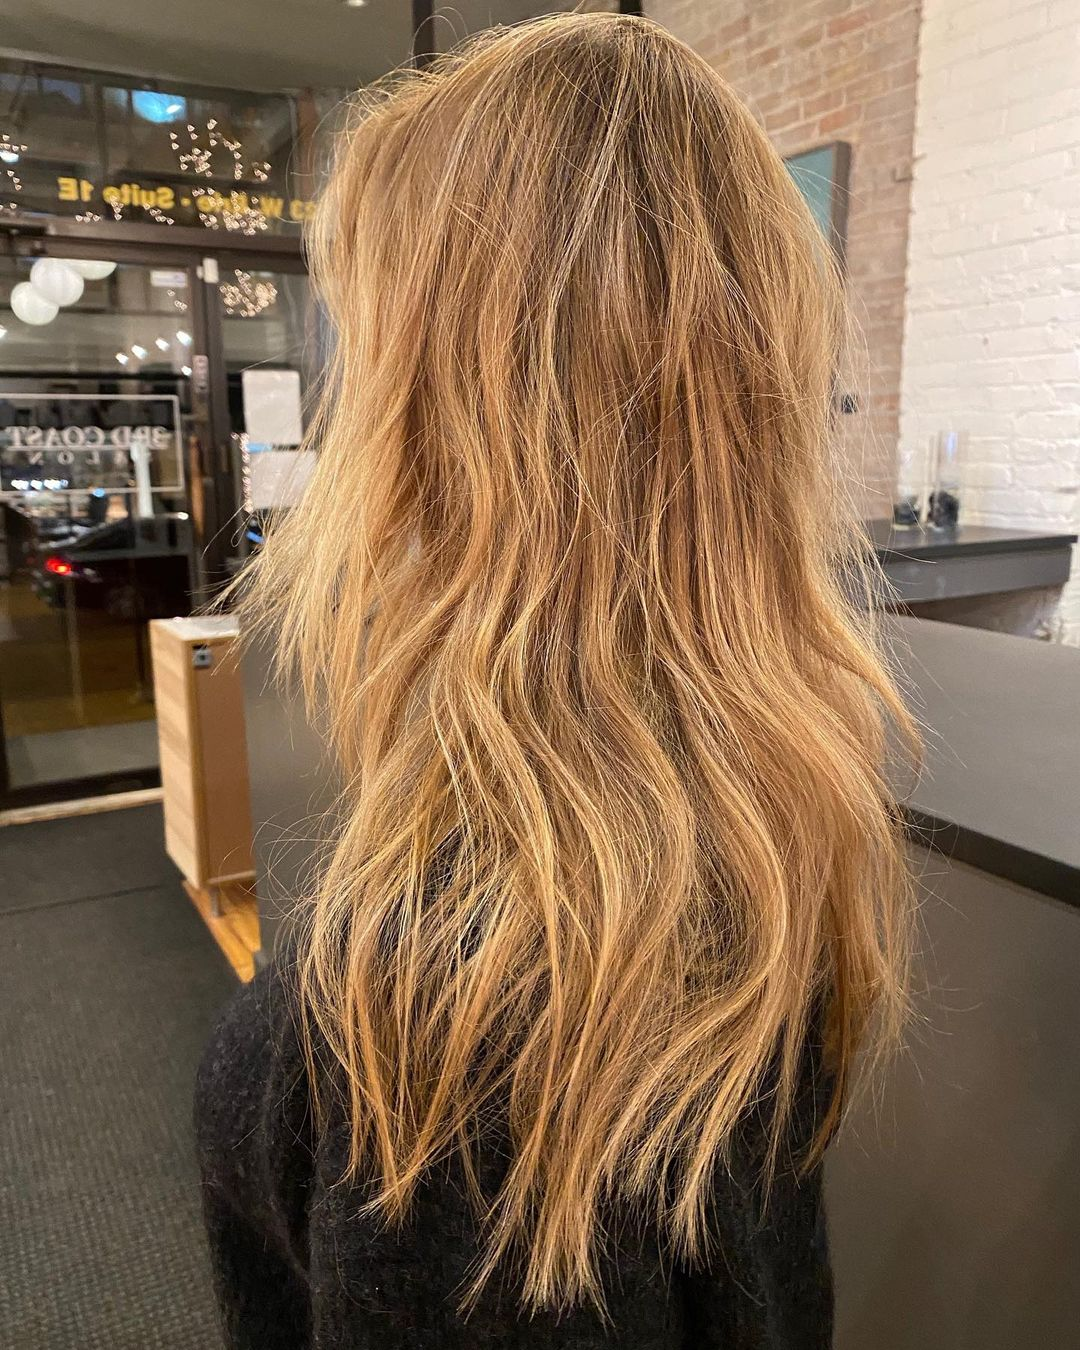 These Are The Top 10 Hair Color Ideas for Winter 2021